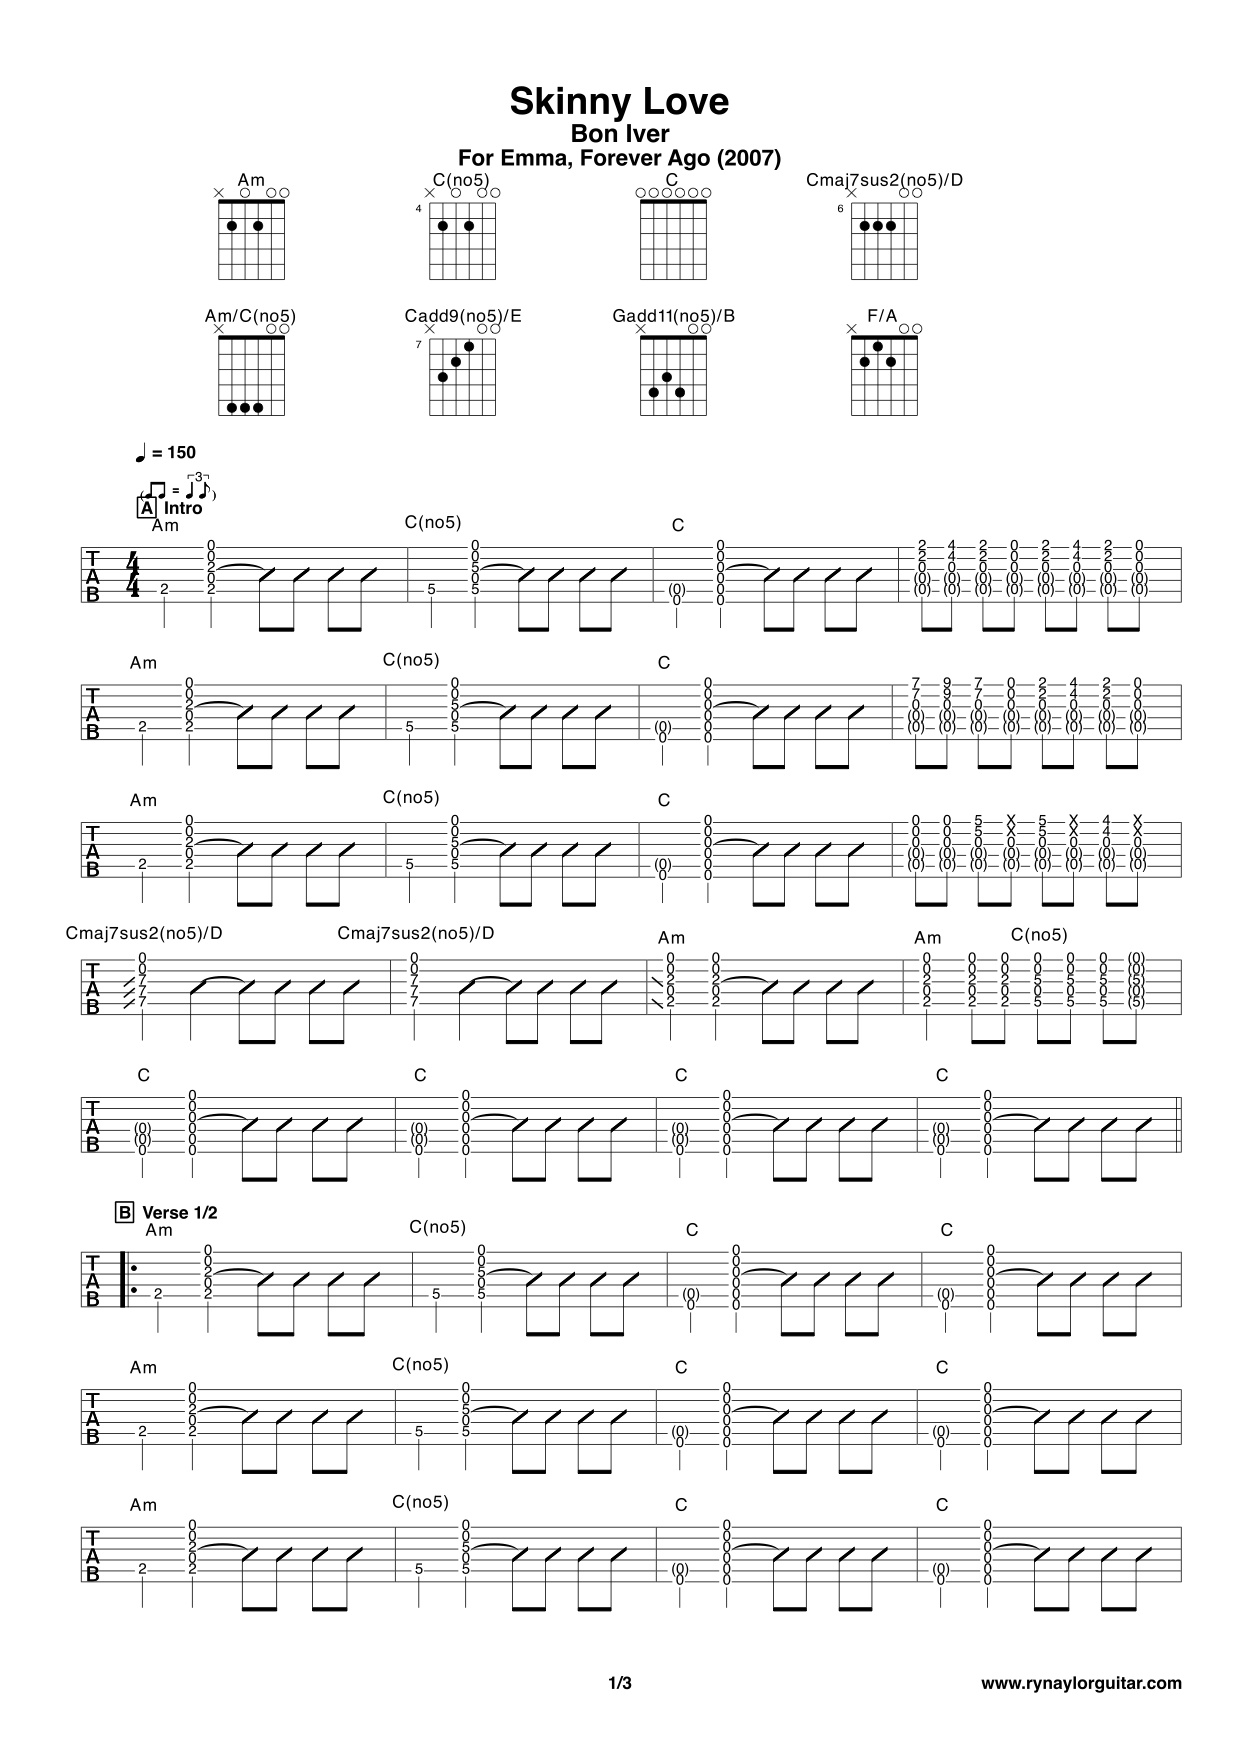 Skinny Love Chords Bon Iver Choice Image Piano Chord Chart With